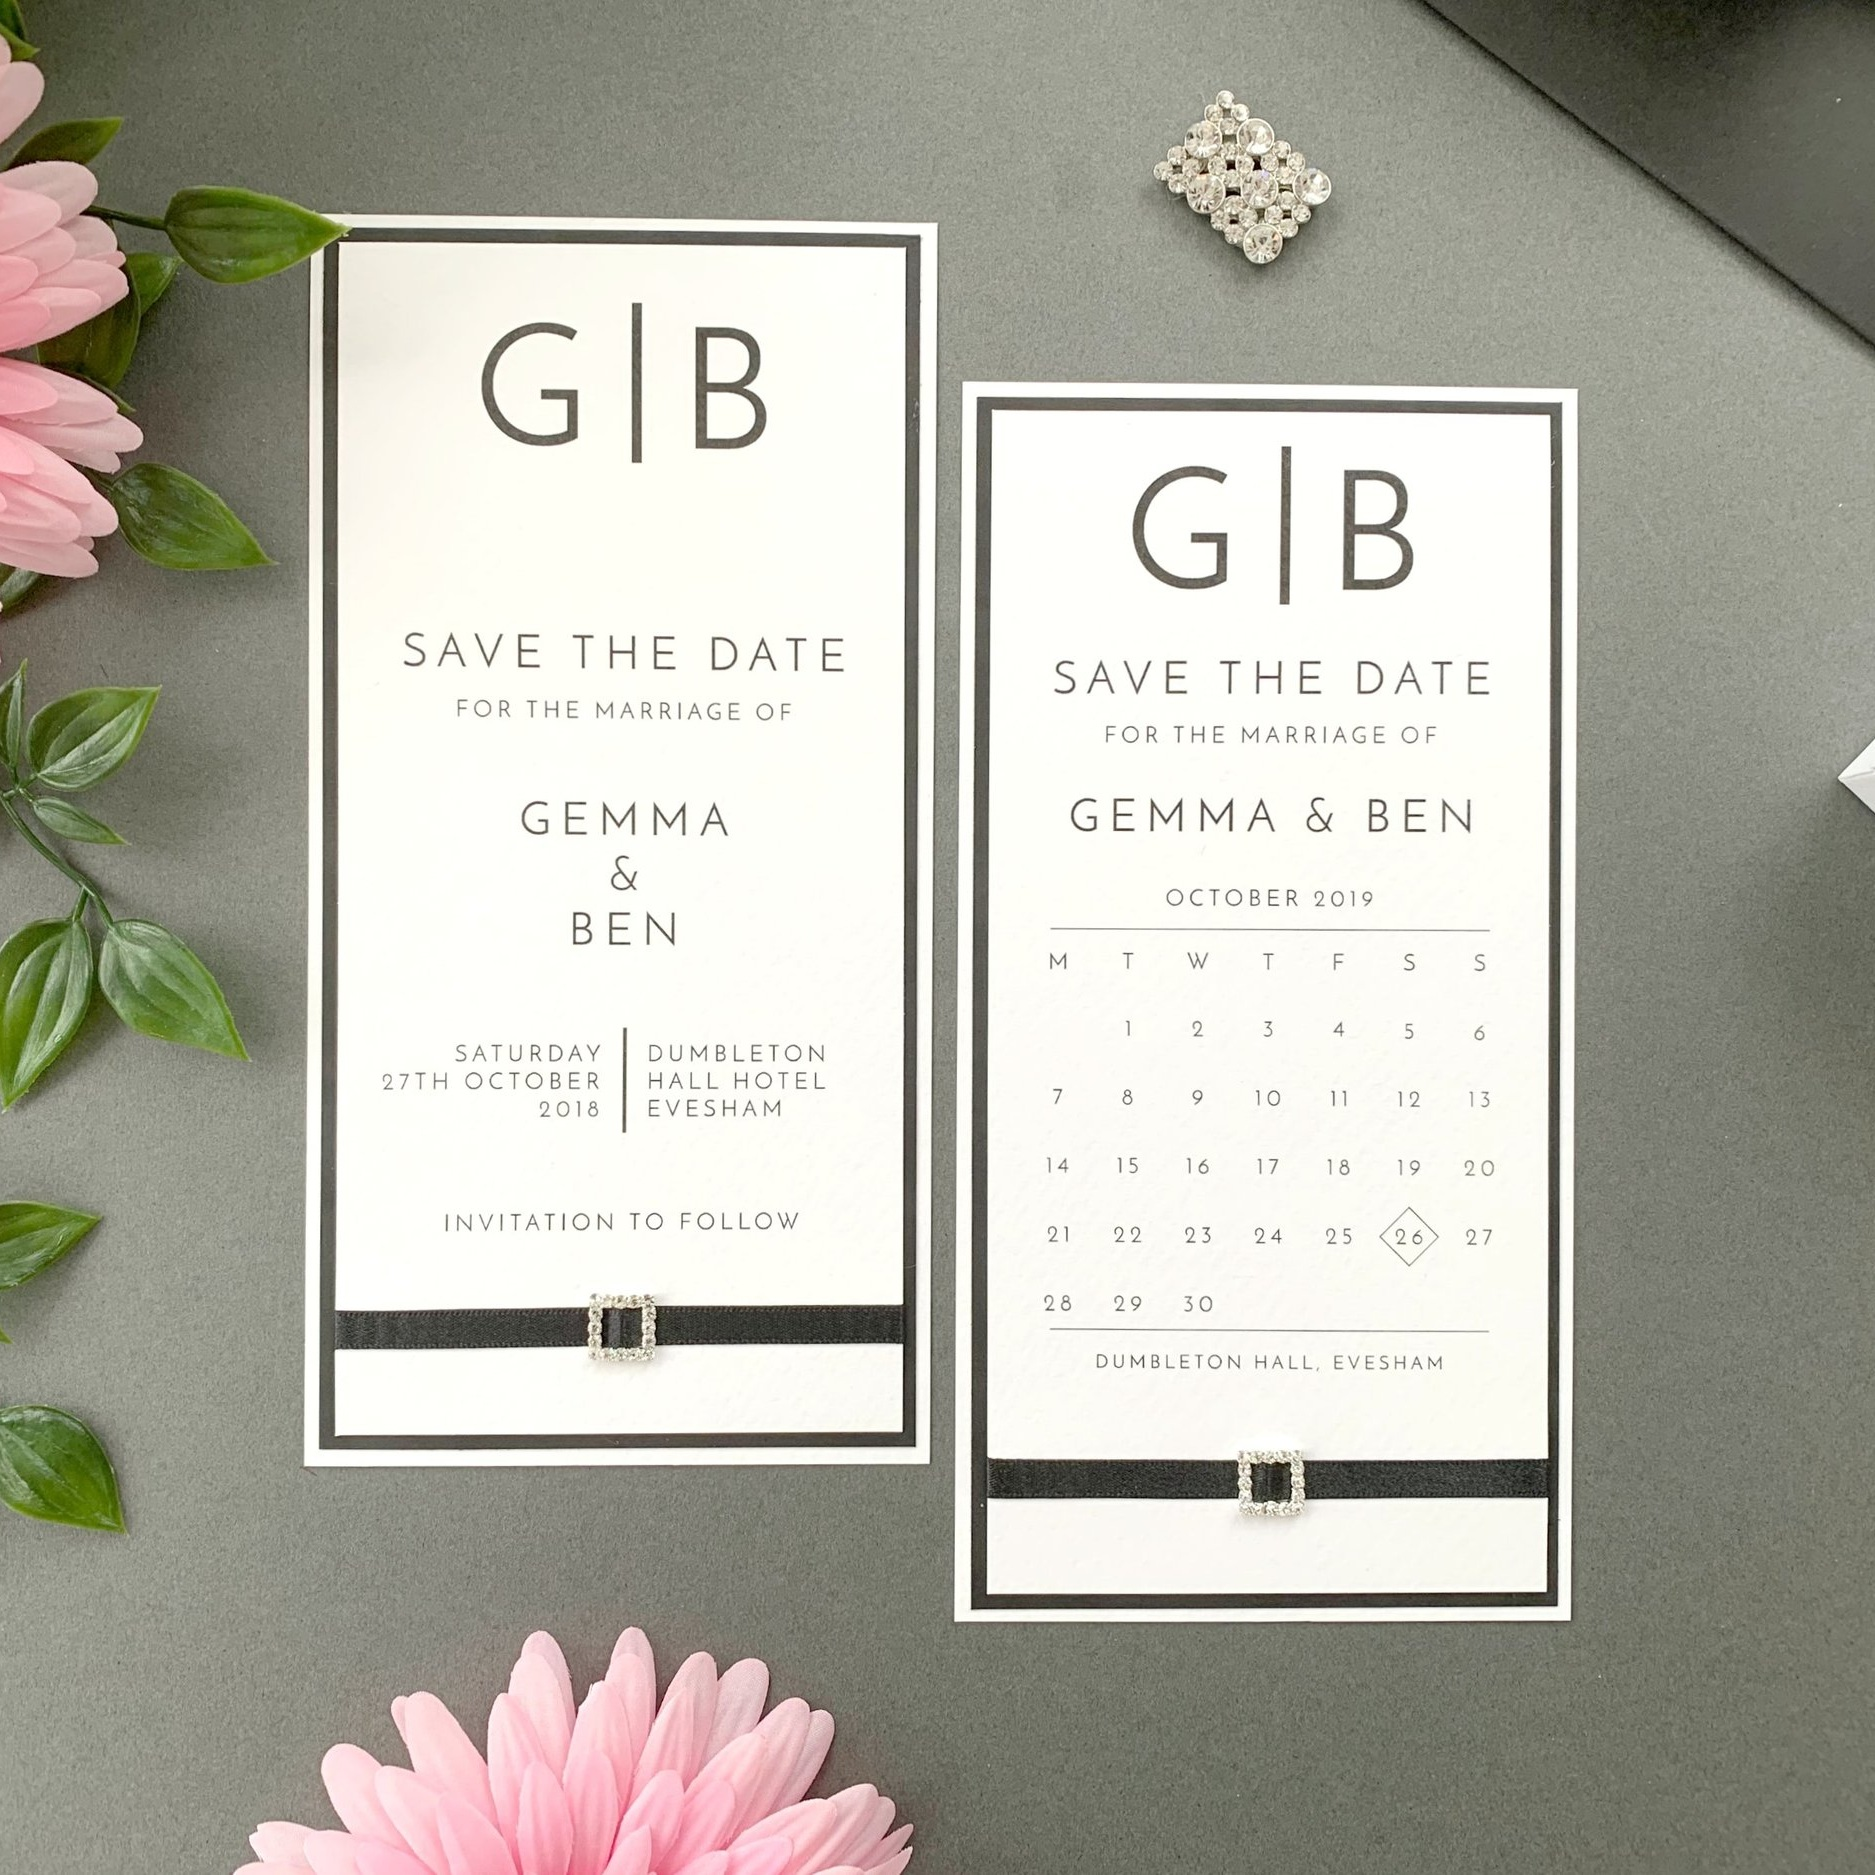 Clio Save The Date Card and Calendar